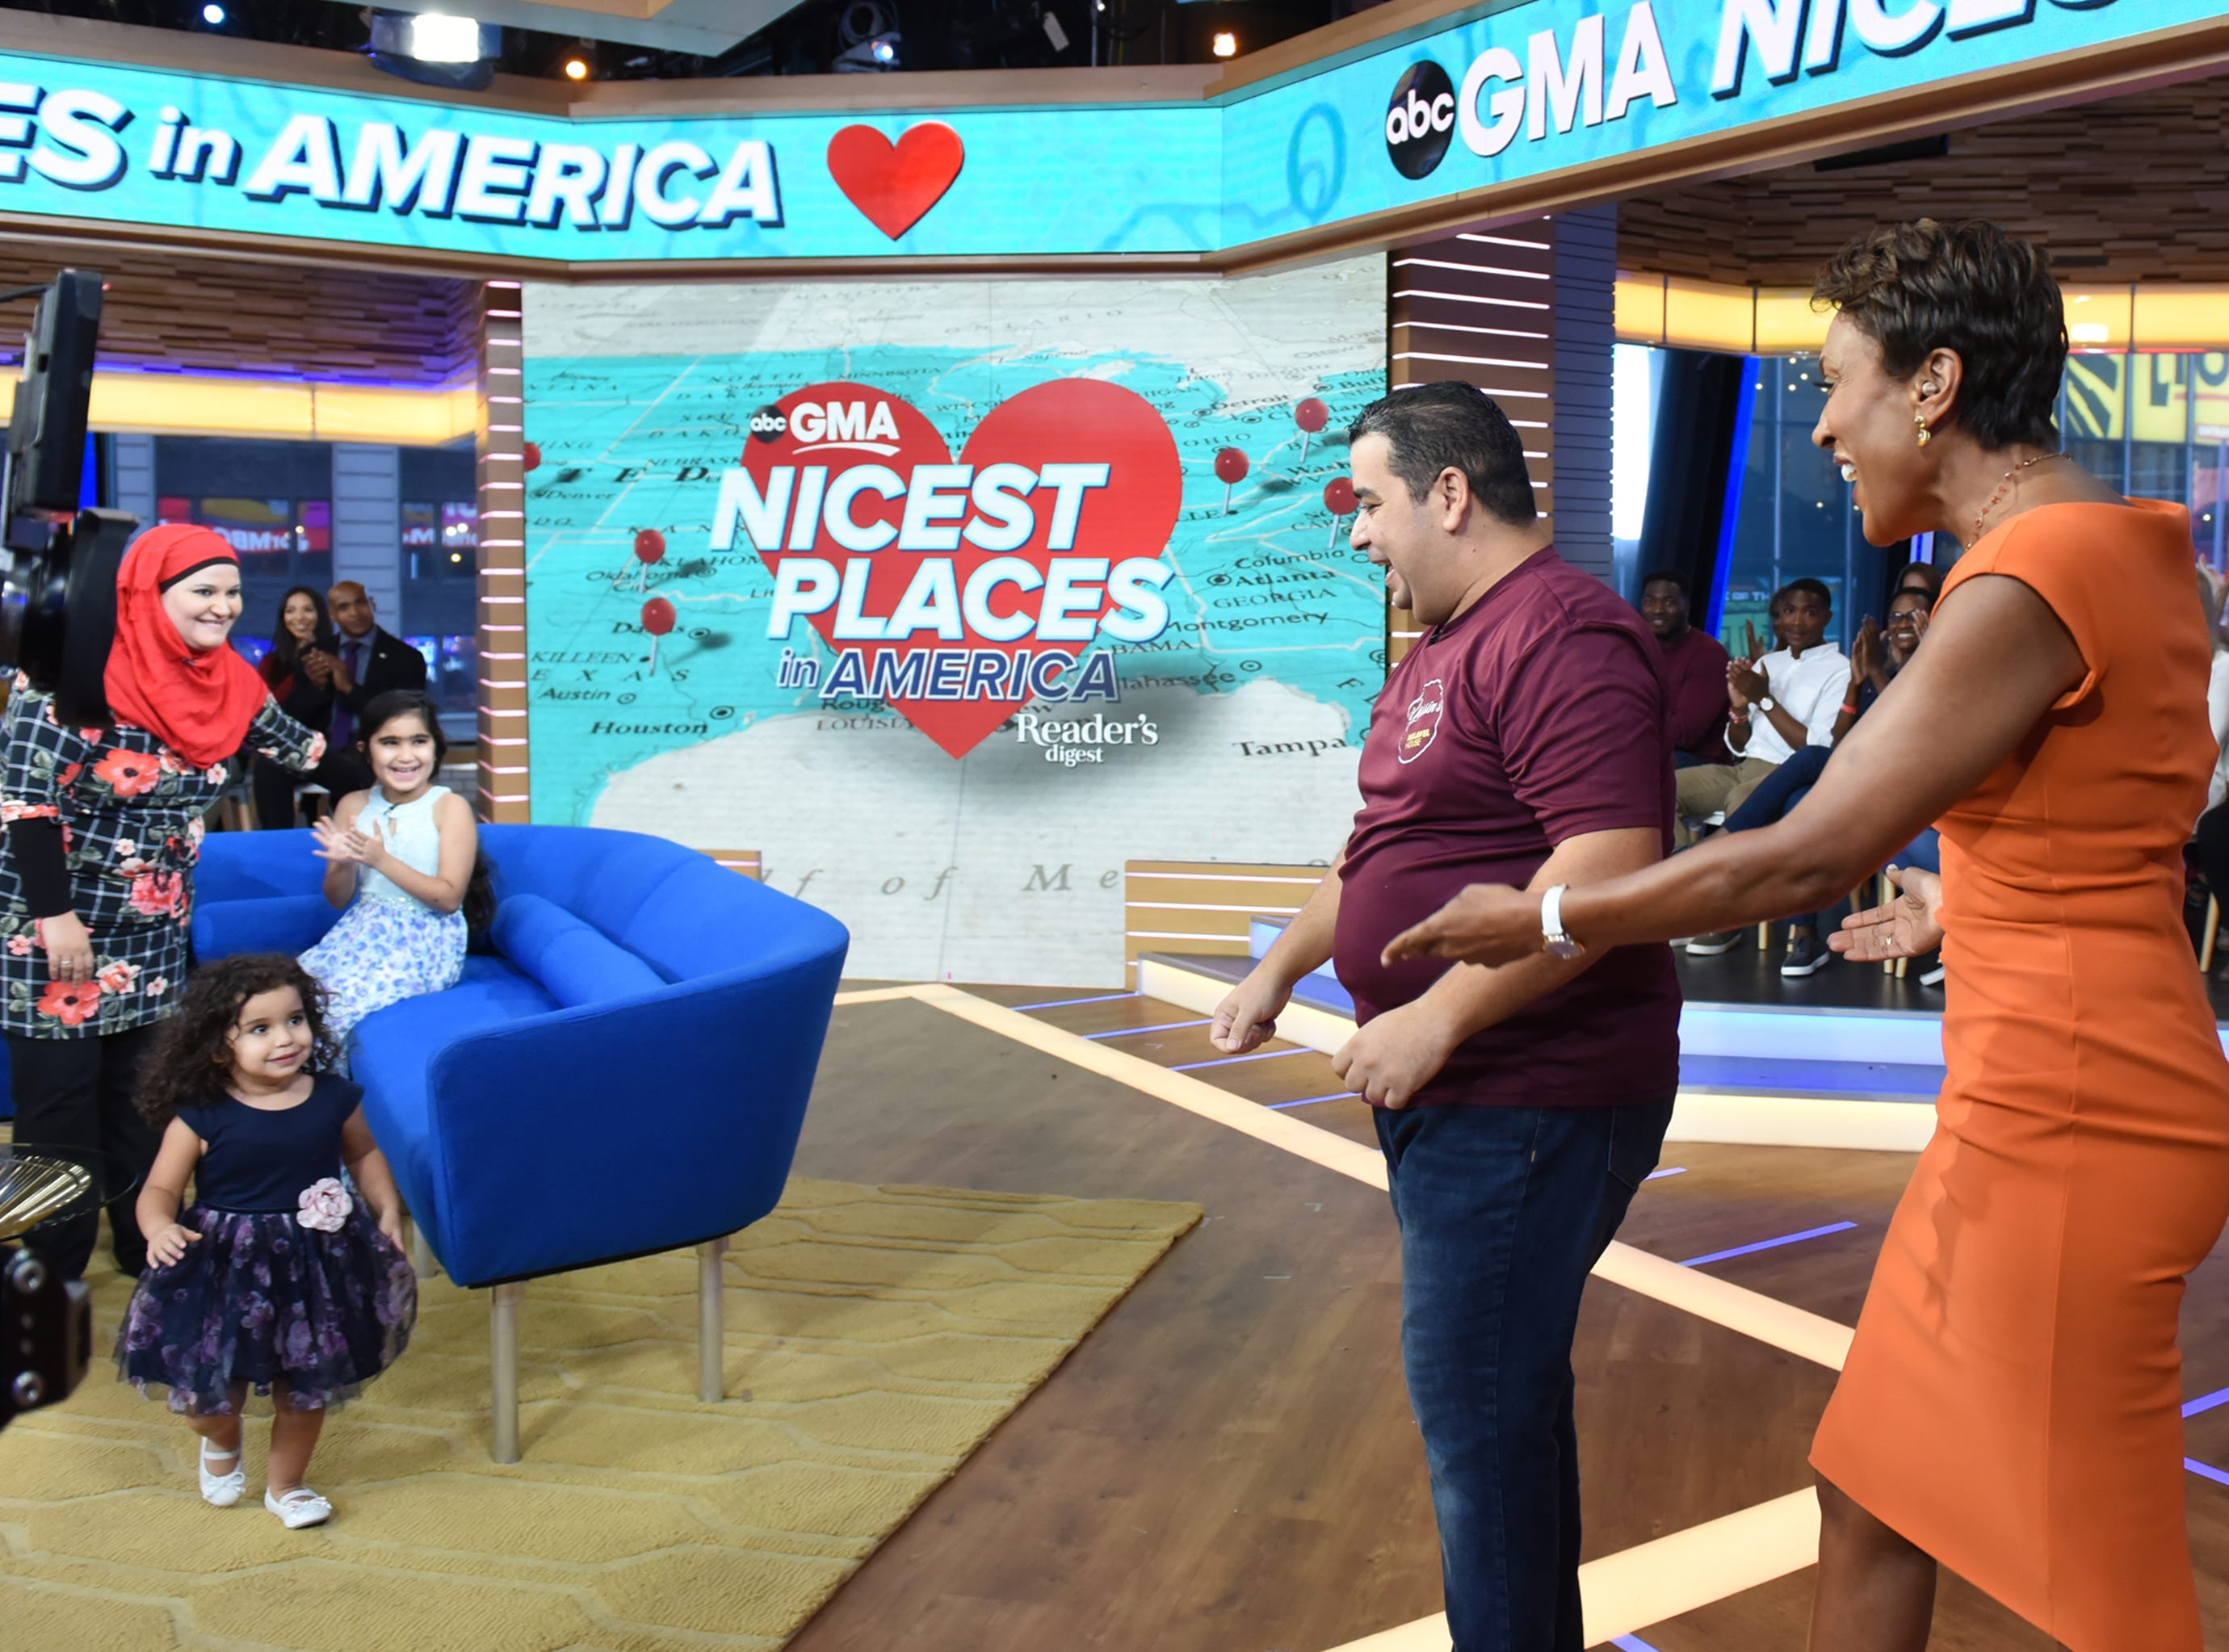 """Yassin Terou, owner of Yassin's Falafel House in Knoxville, Tenn., which won the Reader's Digest Nicest Places in America award, and his family are guests on """"Good Morning America,"""" with host Robin Roberts on Thursday, October 11, 2018 on ABC."""